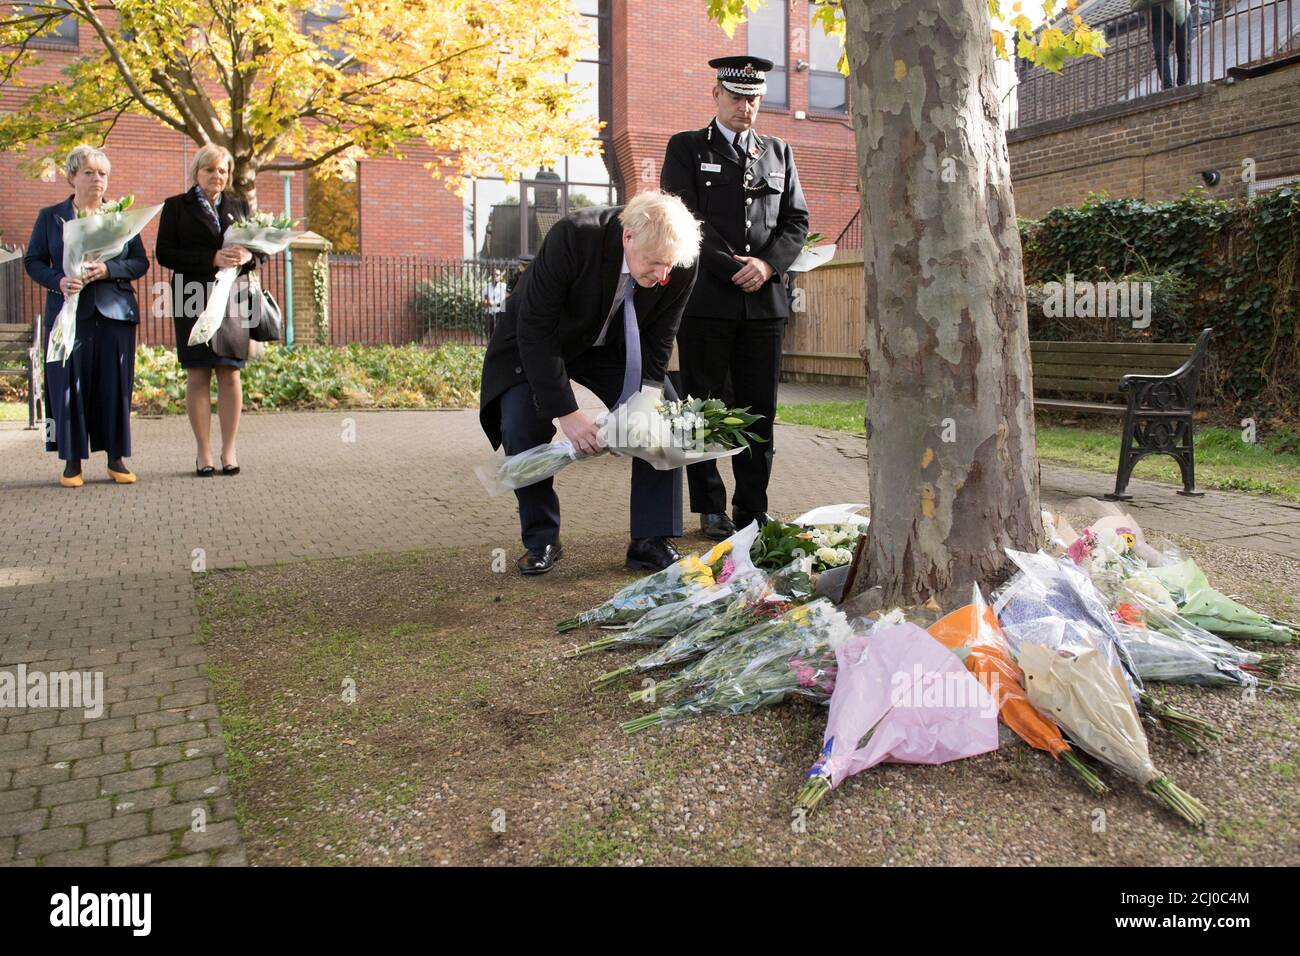 Prime Minister Boris Johnson stands with the Chief Constable of Essex Police, Ben-Julian Harrington, as he lays flowers during during a visit to Thurrock Council Offices in Grays, Britain, October 28, 2019. Stefan Rousseau/Pool via REUTERS Stock Photo